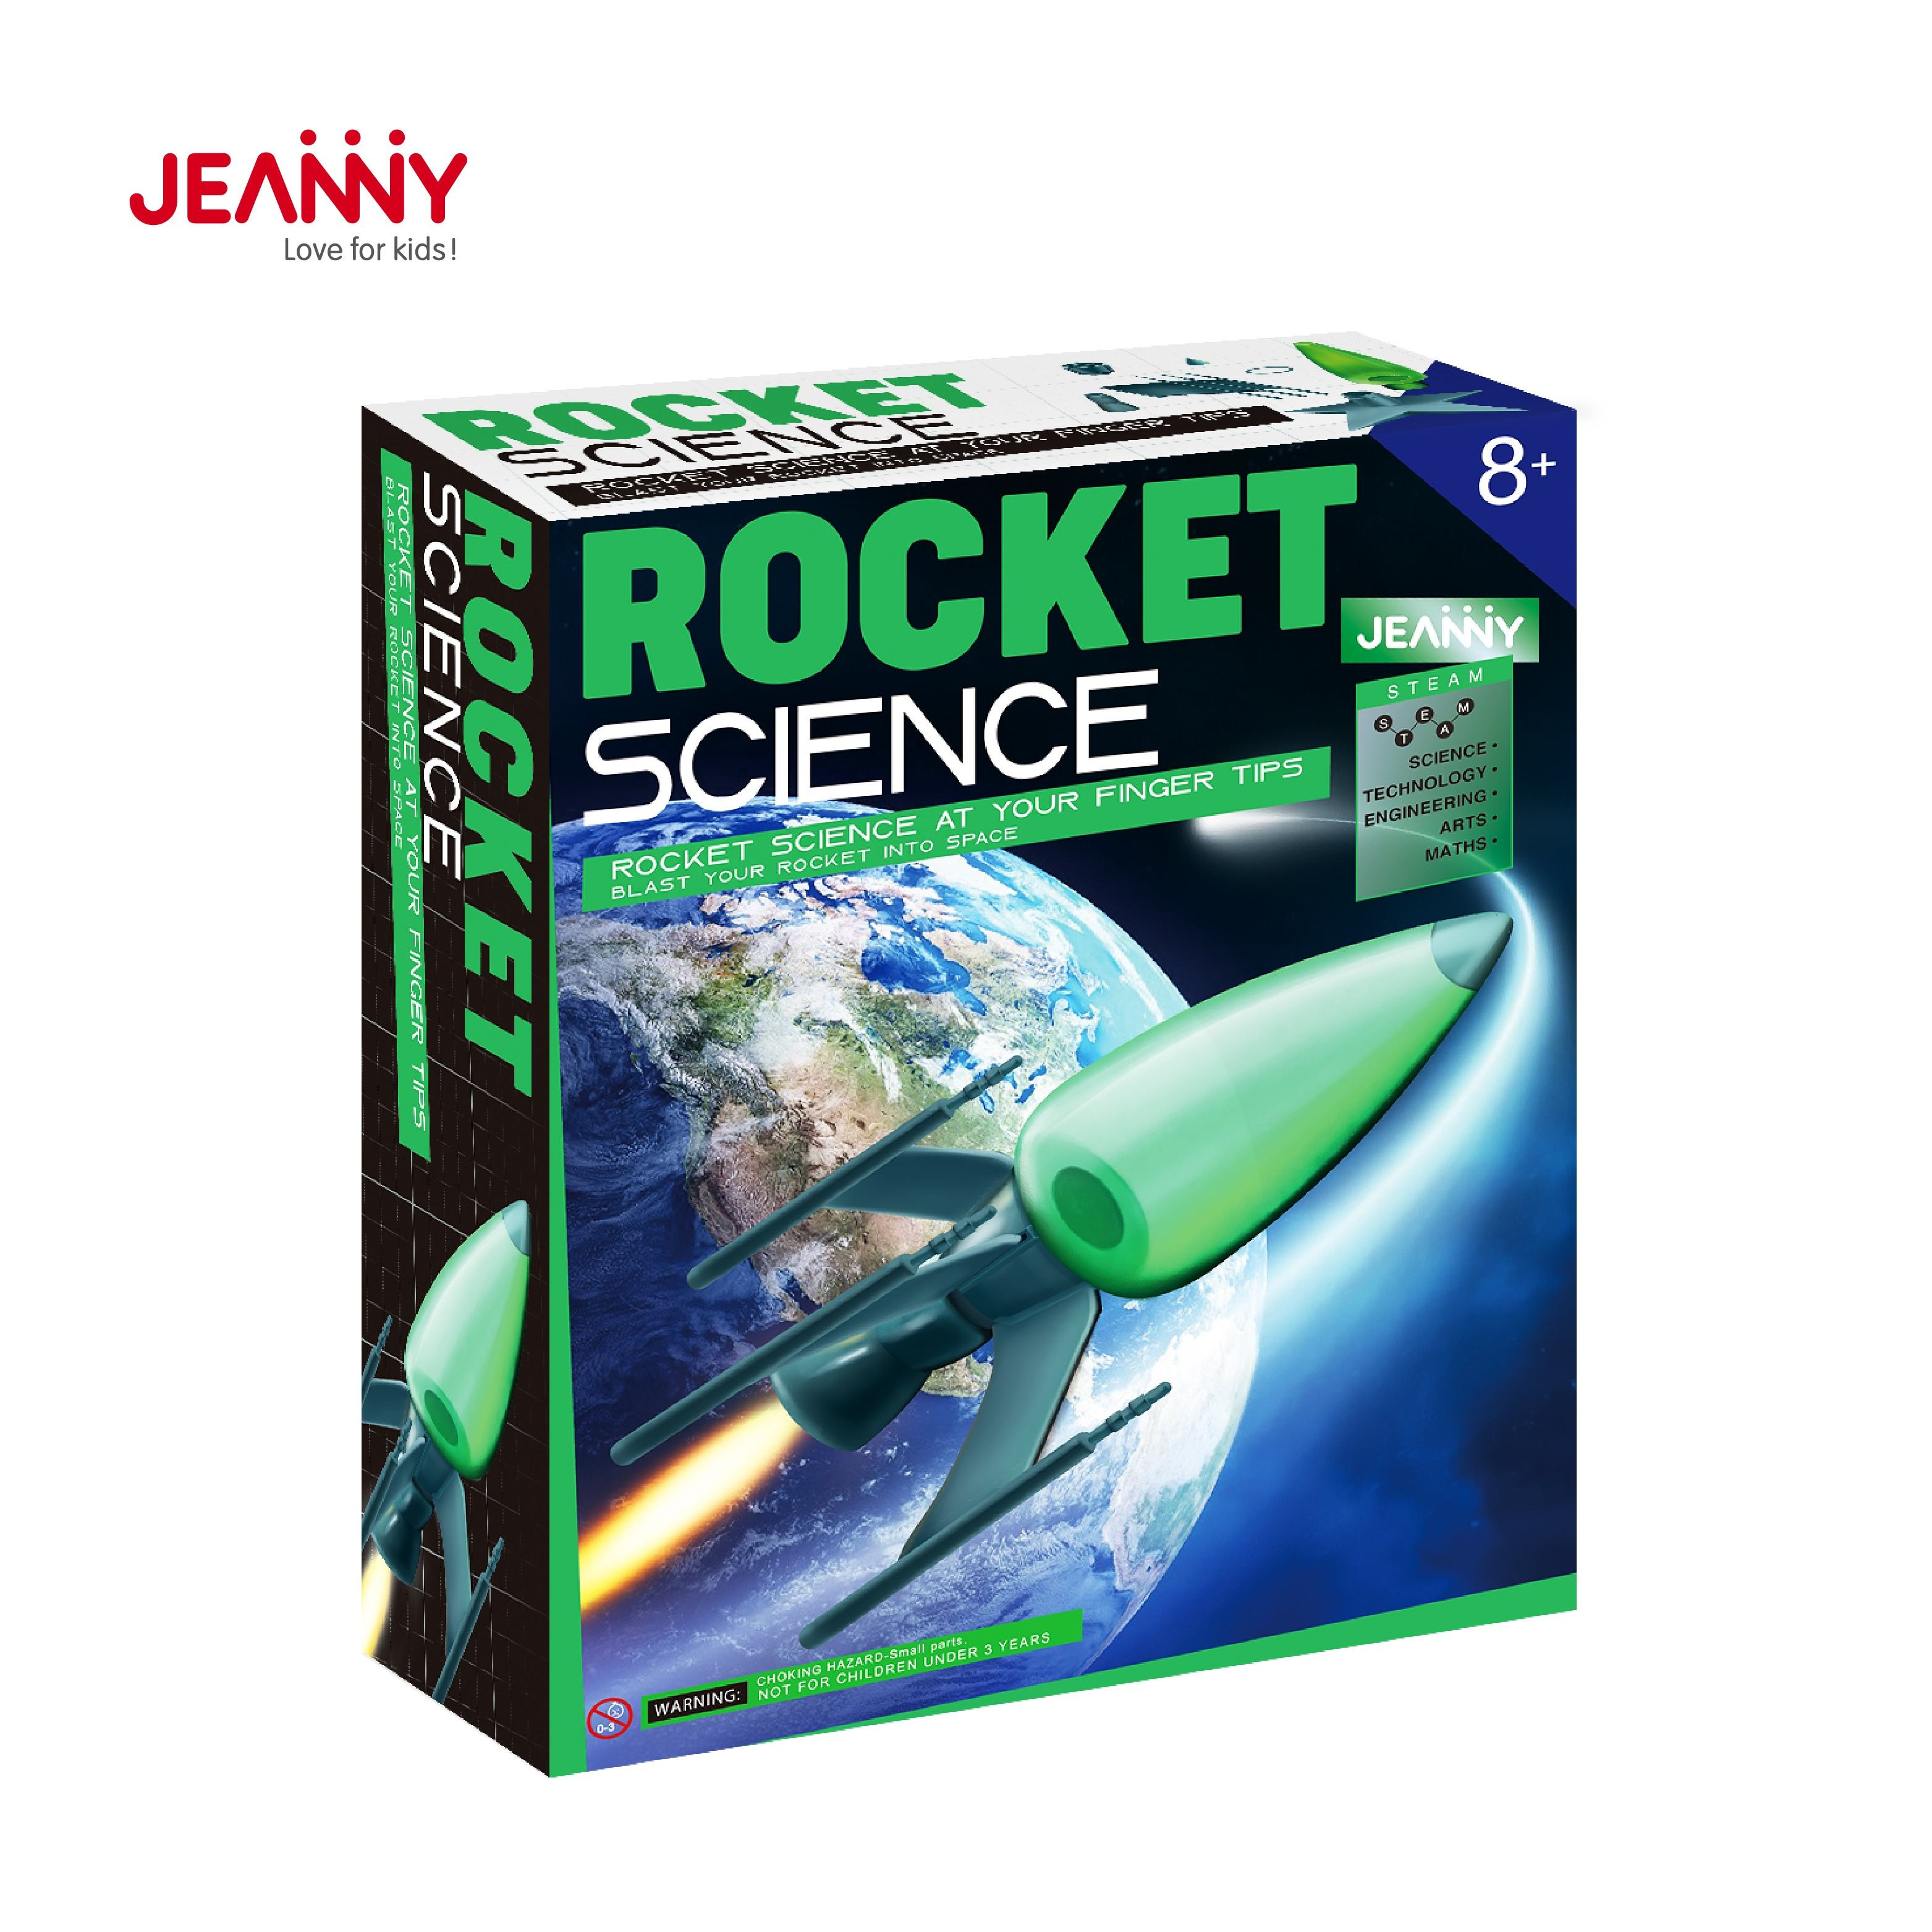 Best Selling Stem Preschool Educational Science Creative Toys For Kids 2020 Rocket Science Stem Toys Educational Kits For Boys